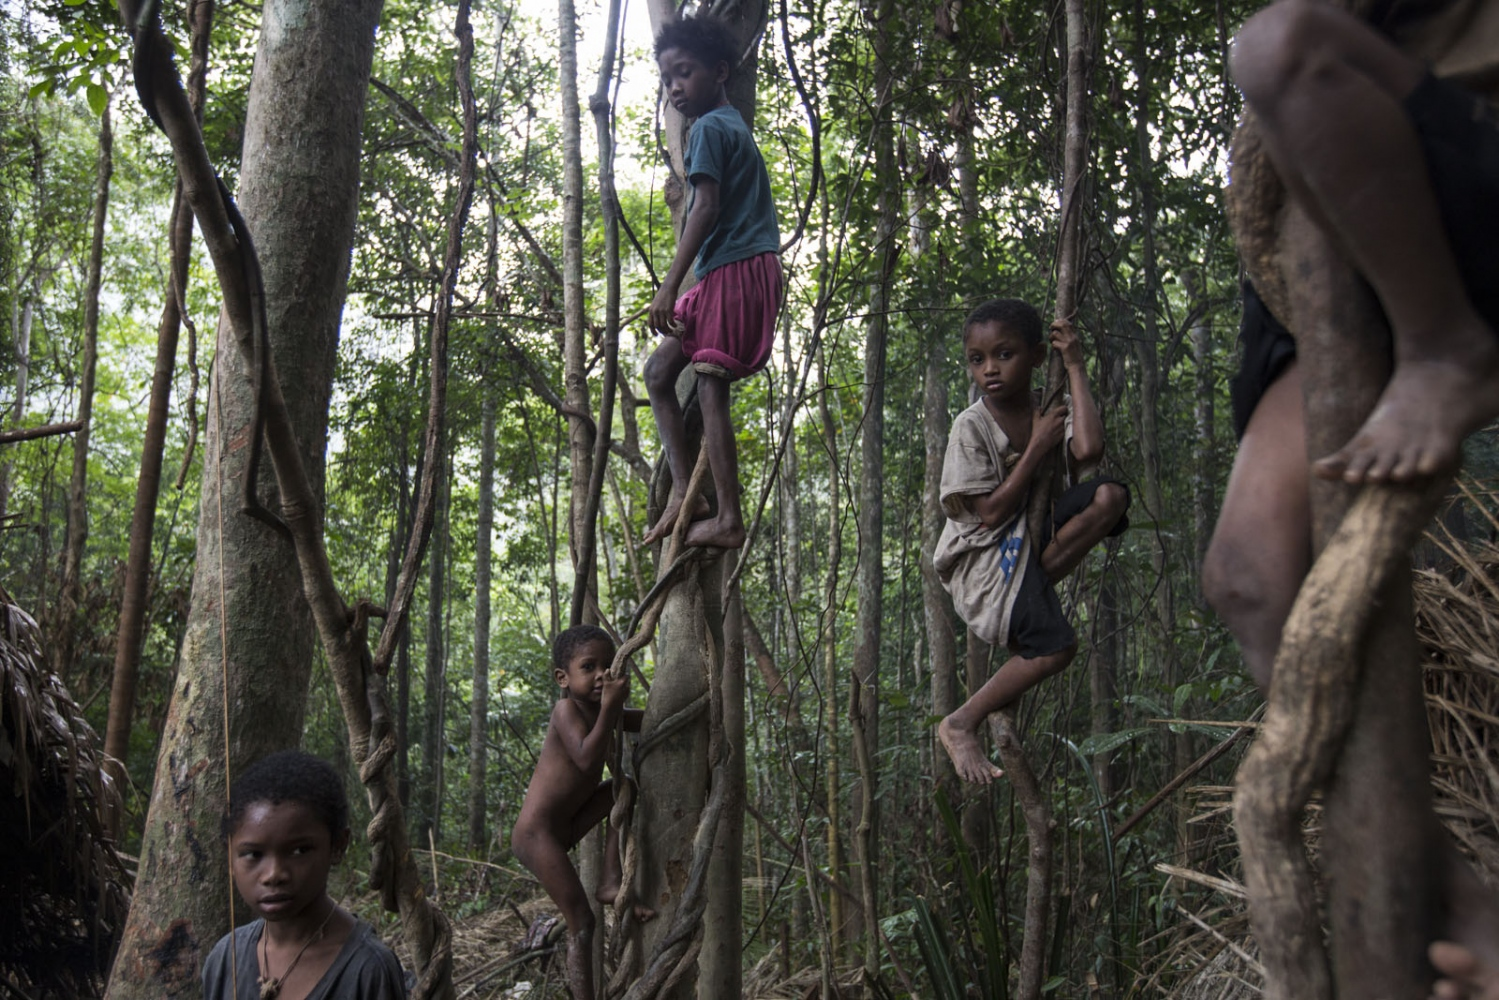 Maniq children play in the trees at one of their temporary settlements. They will stay here for 2-3 months until the food sources in the vicinity are exhausted before moving on. Satun - September 2016